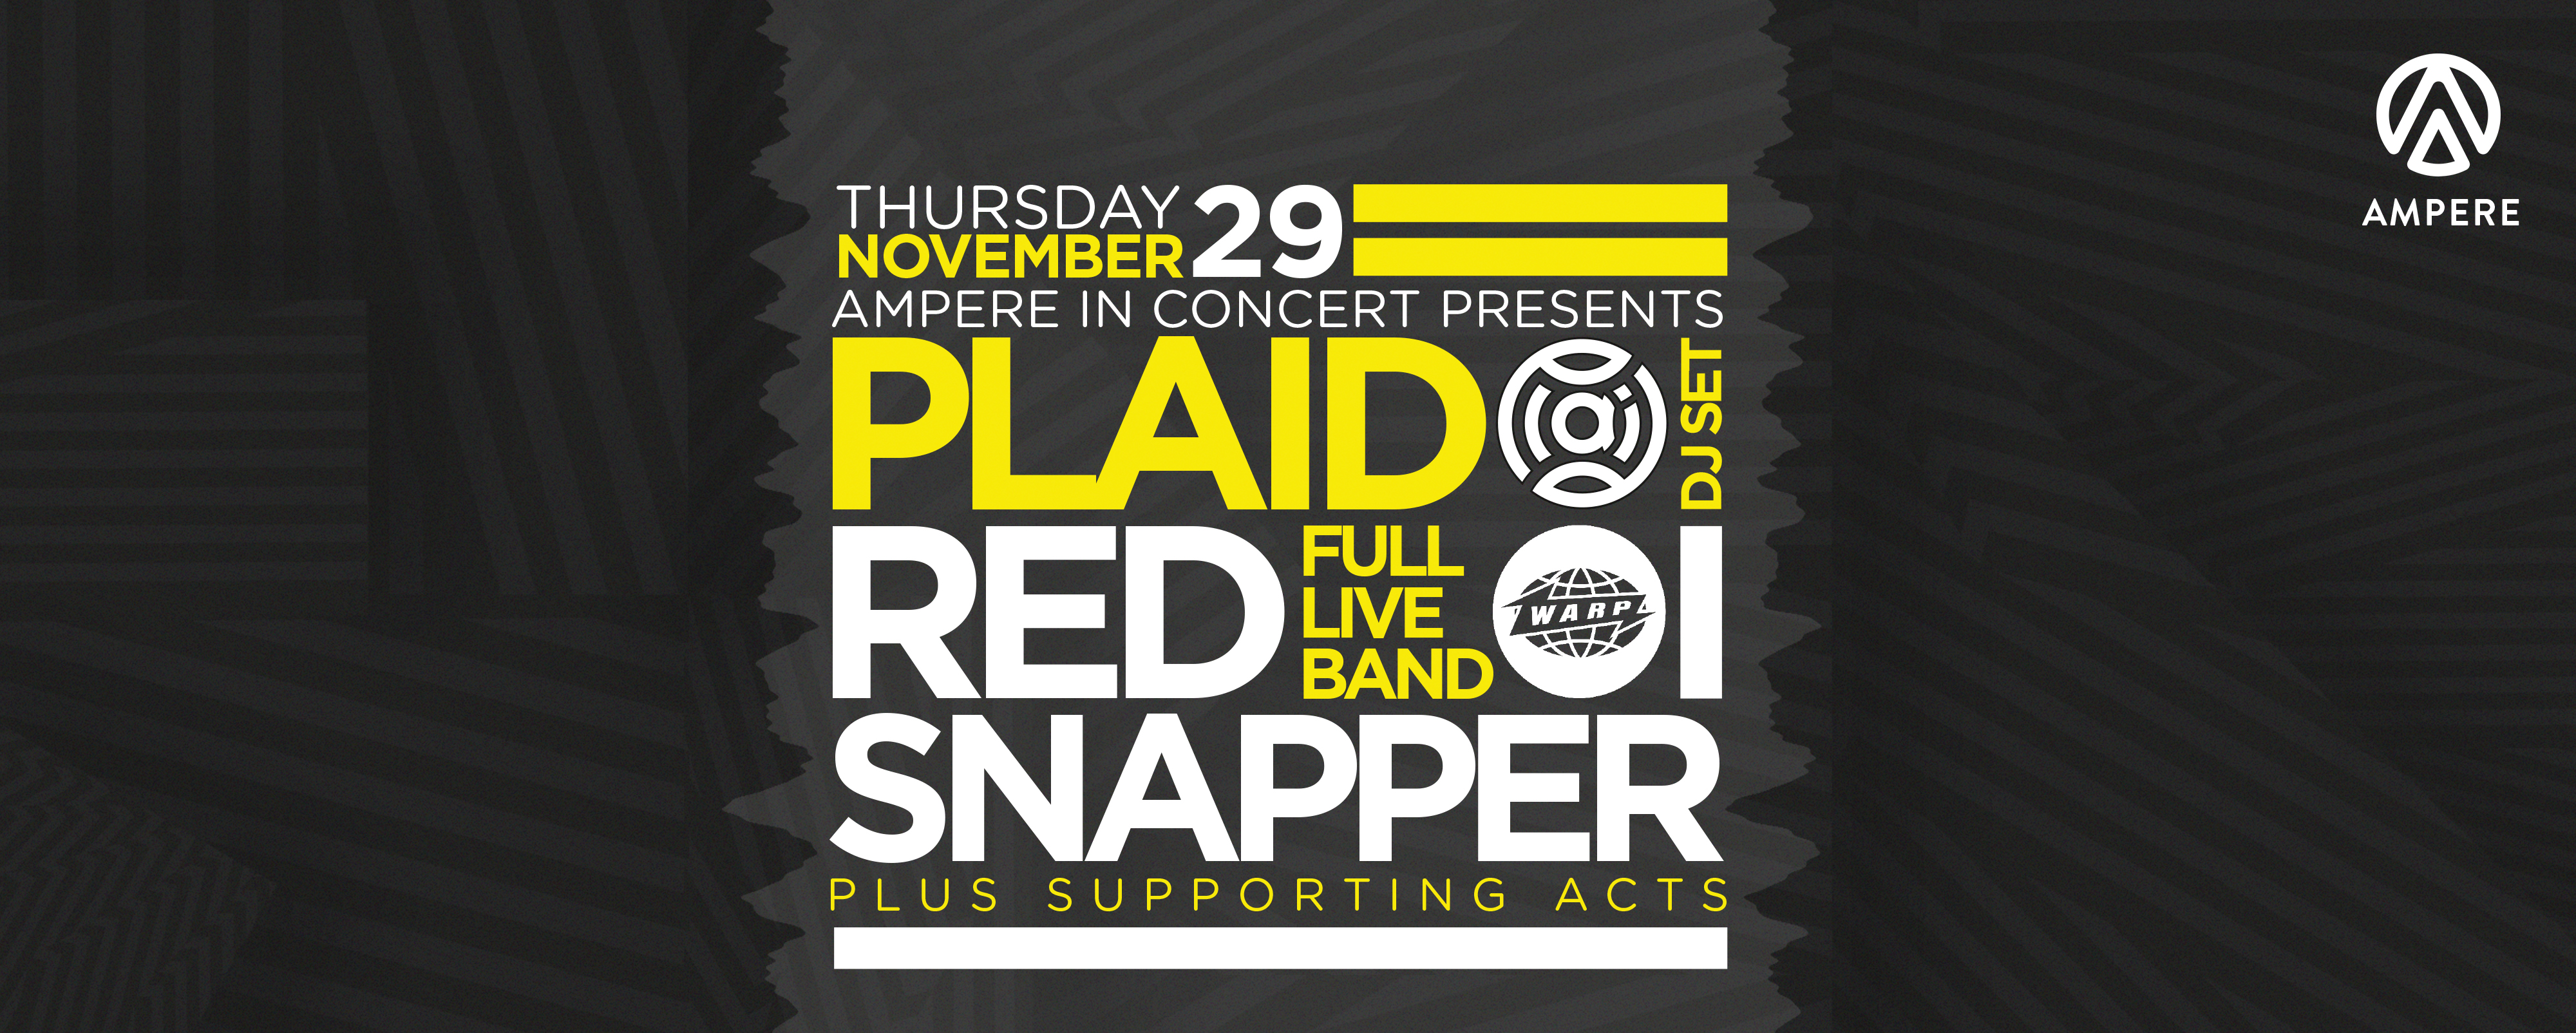 Ampere Ampere in concert: Red Snapper live + Plaid dj set (WARP